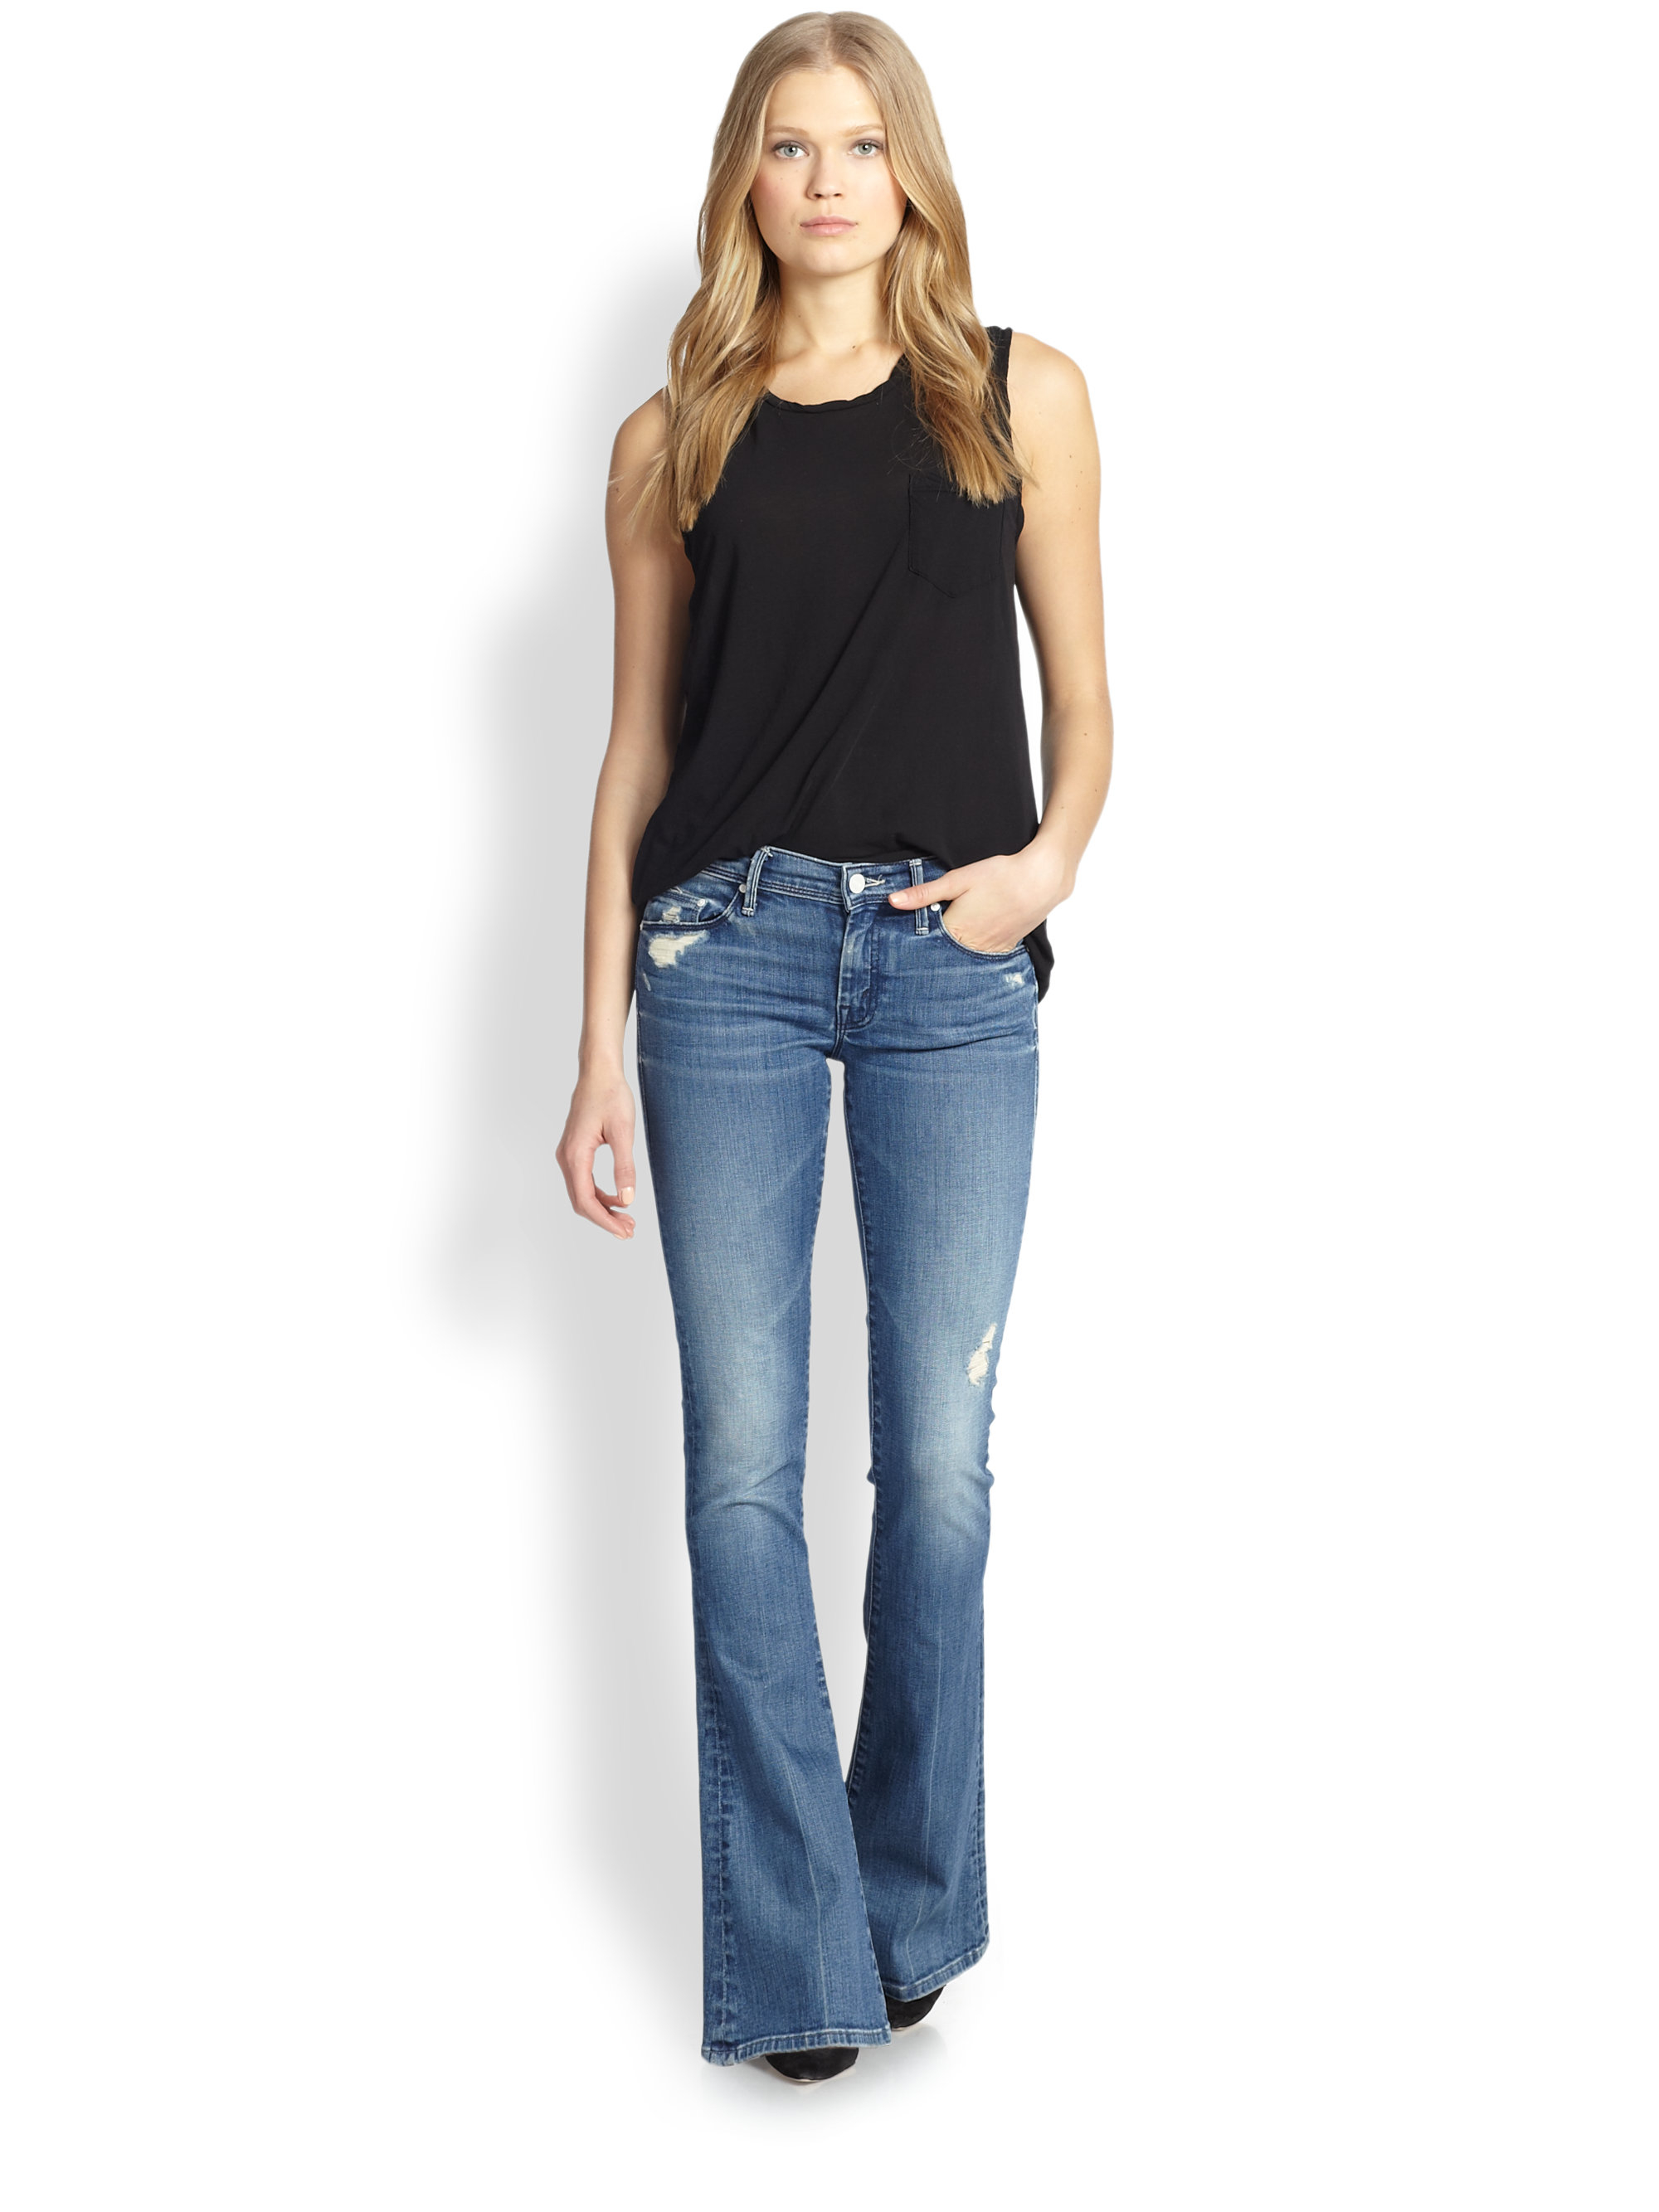 flare jeans gallery CLVFBIY